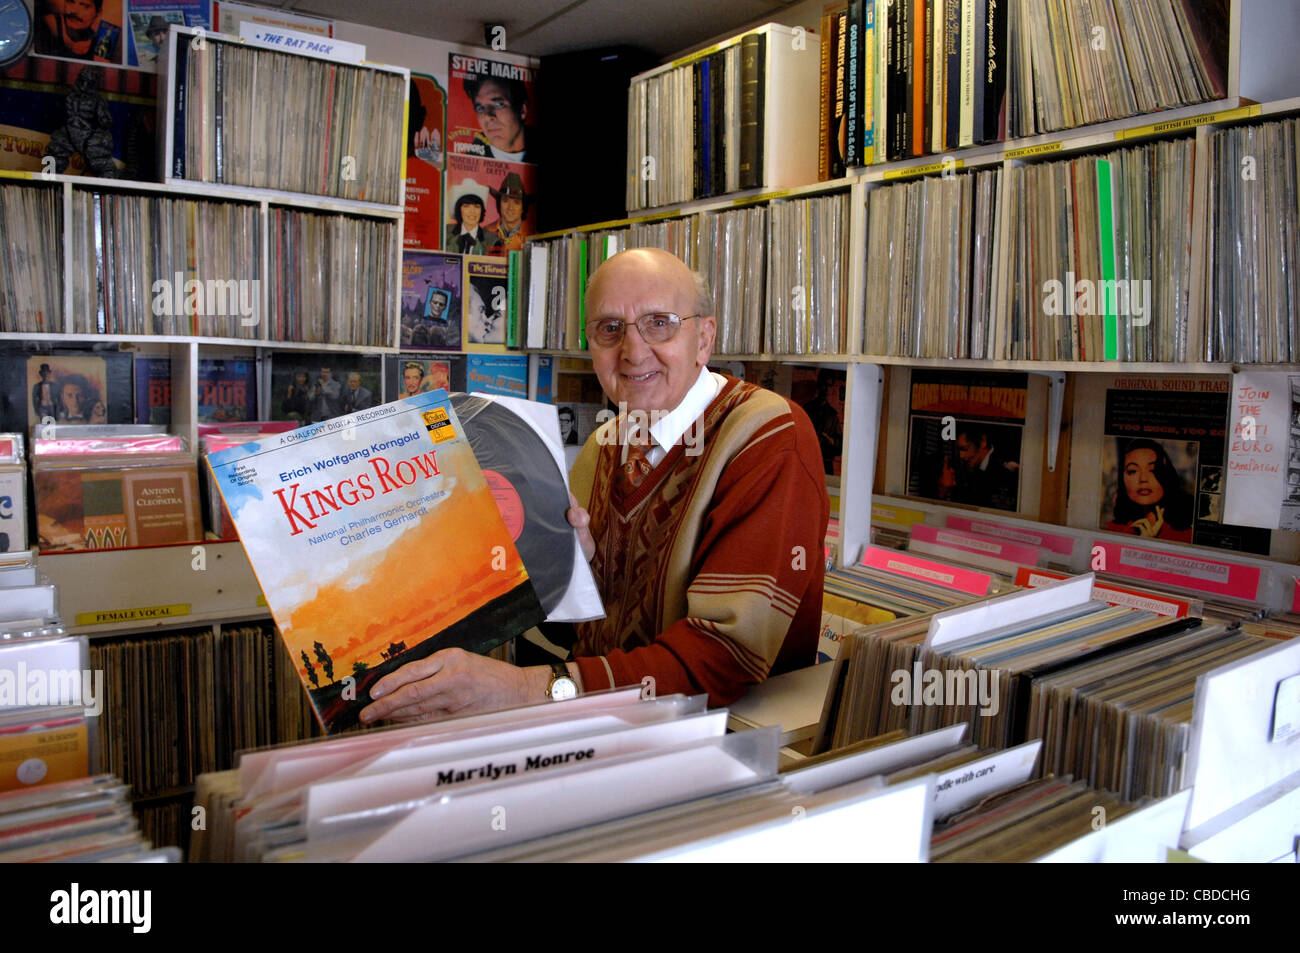 Record Vinyl Shop Uk Stock Photos \u0026 Record Vinyl Shop Uk Stock ...